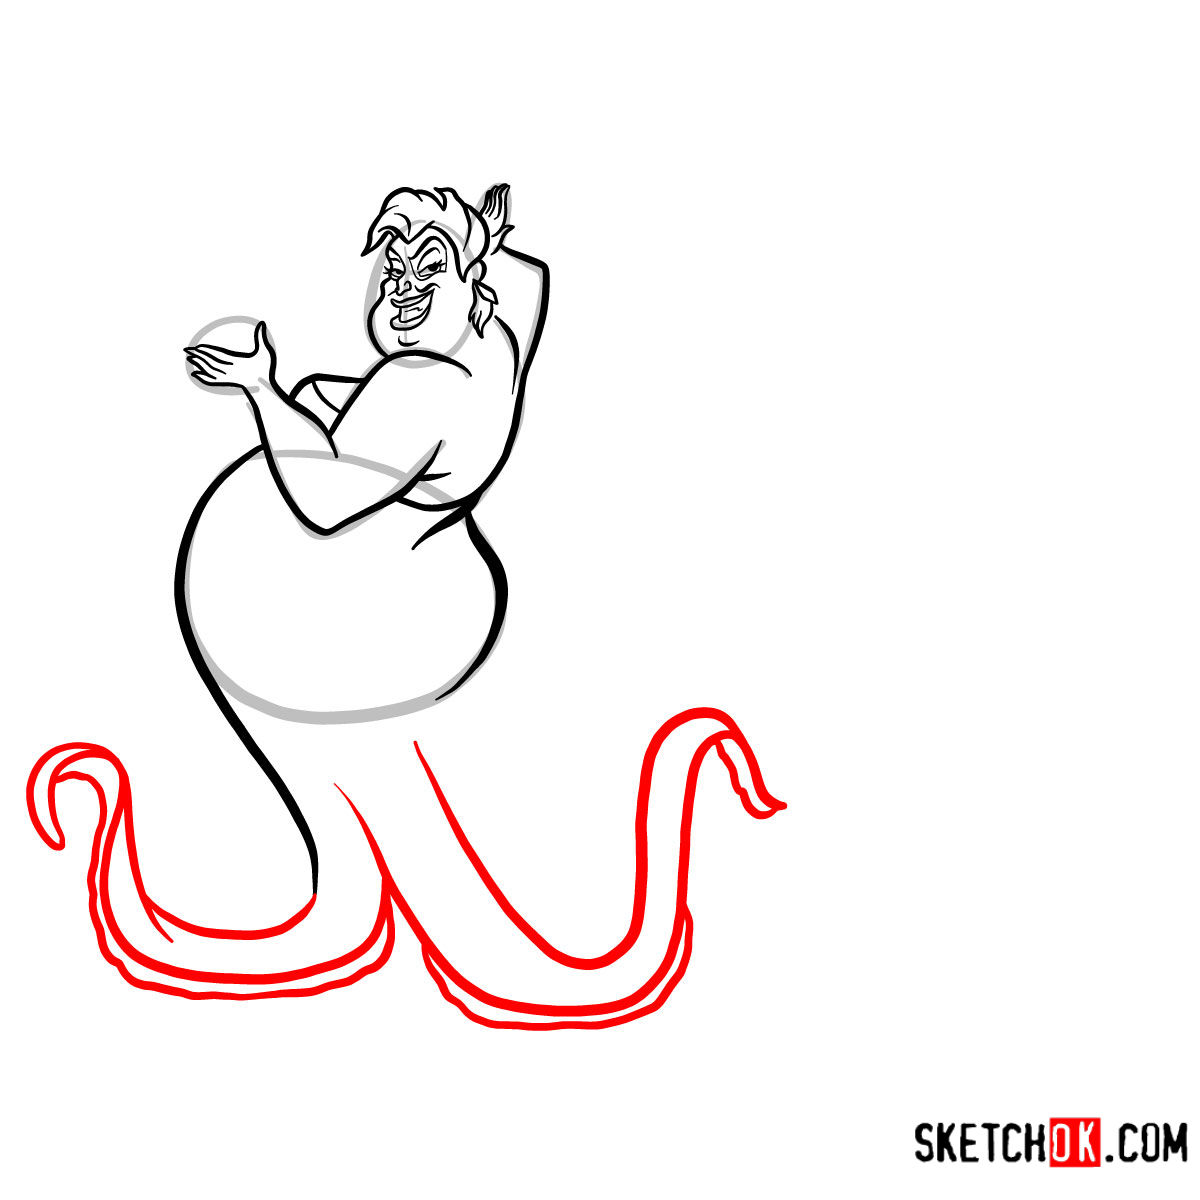 How to draw Ursula | The Little Mermaid - step 08